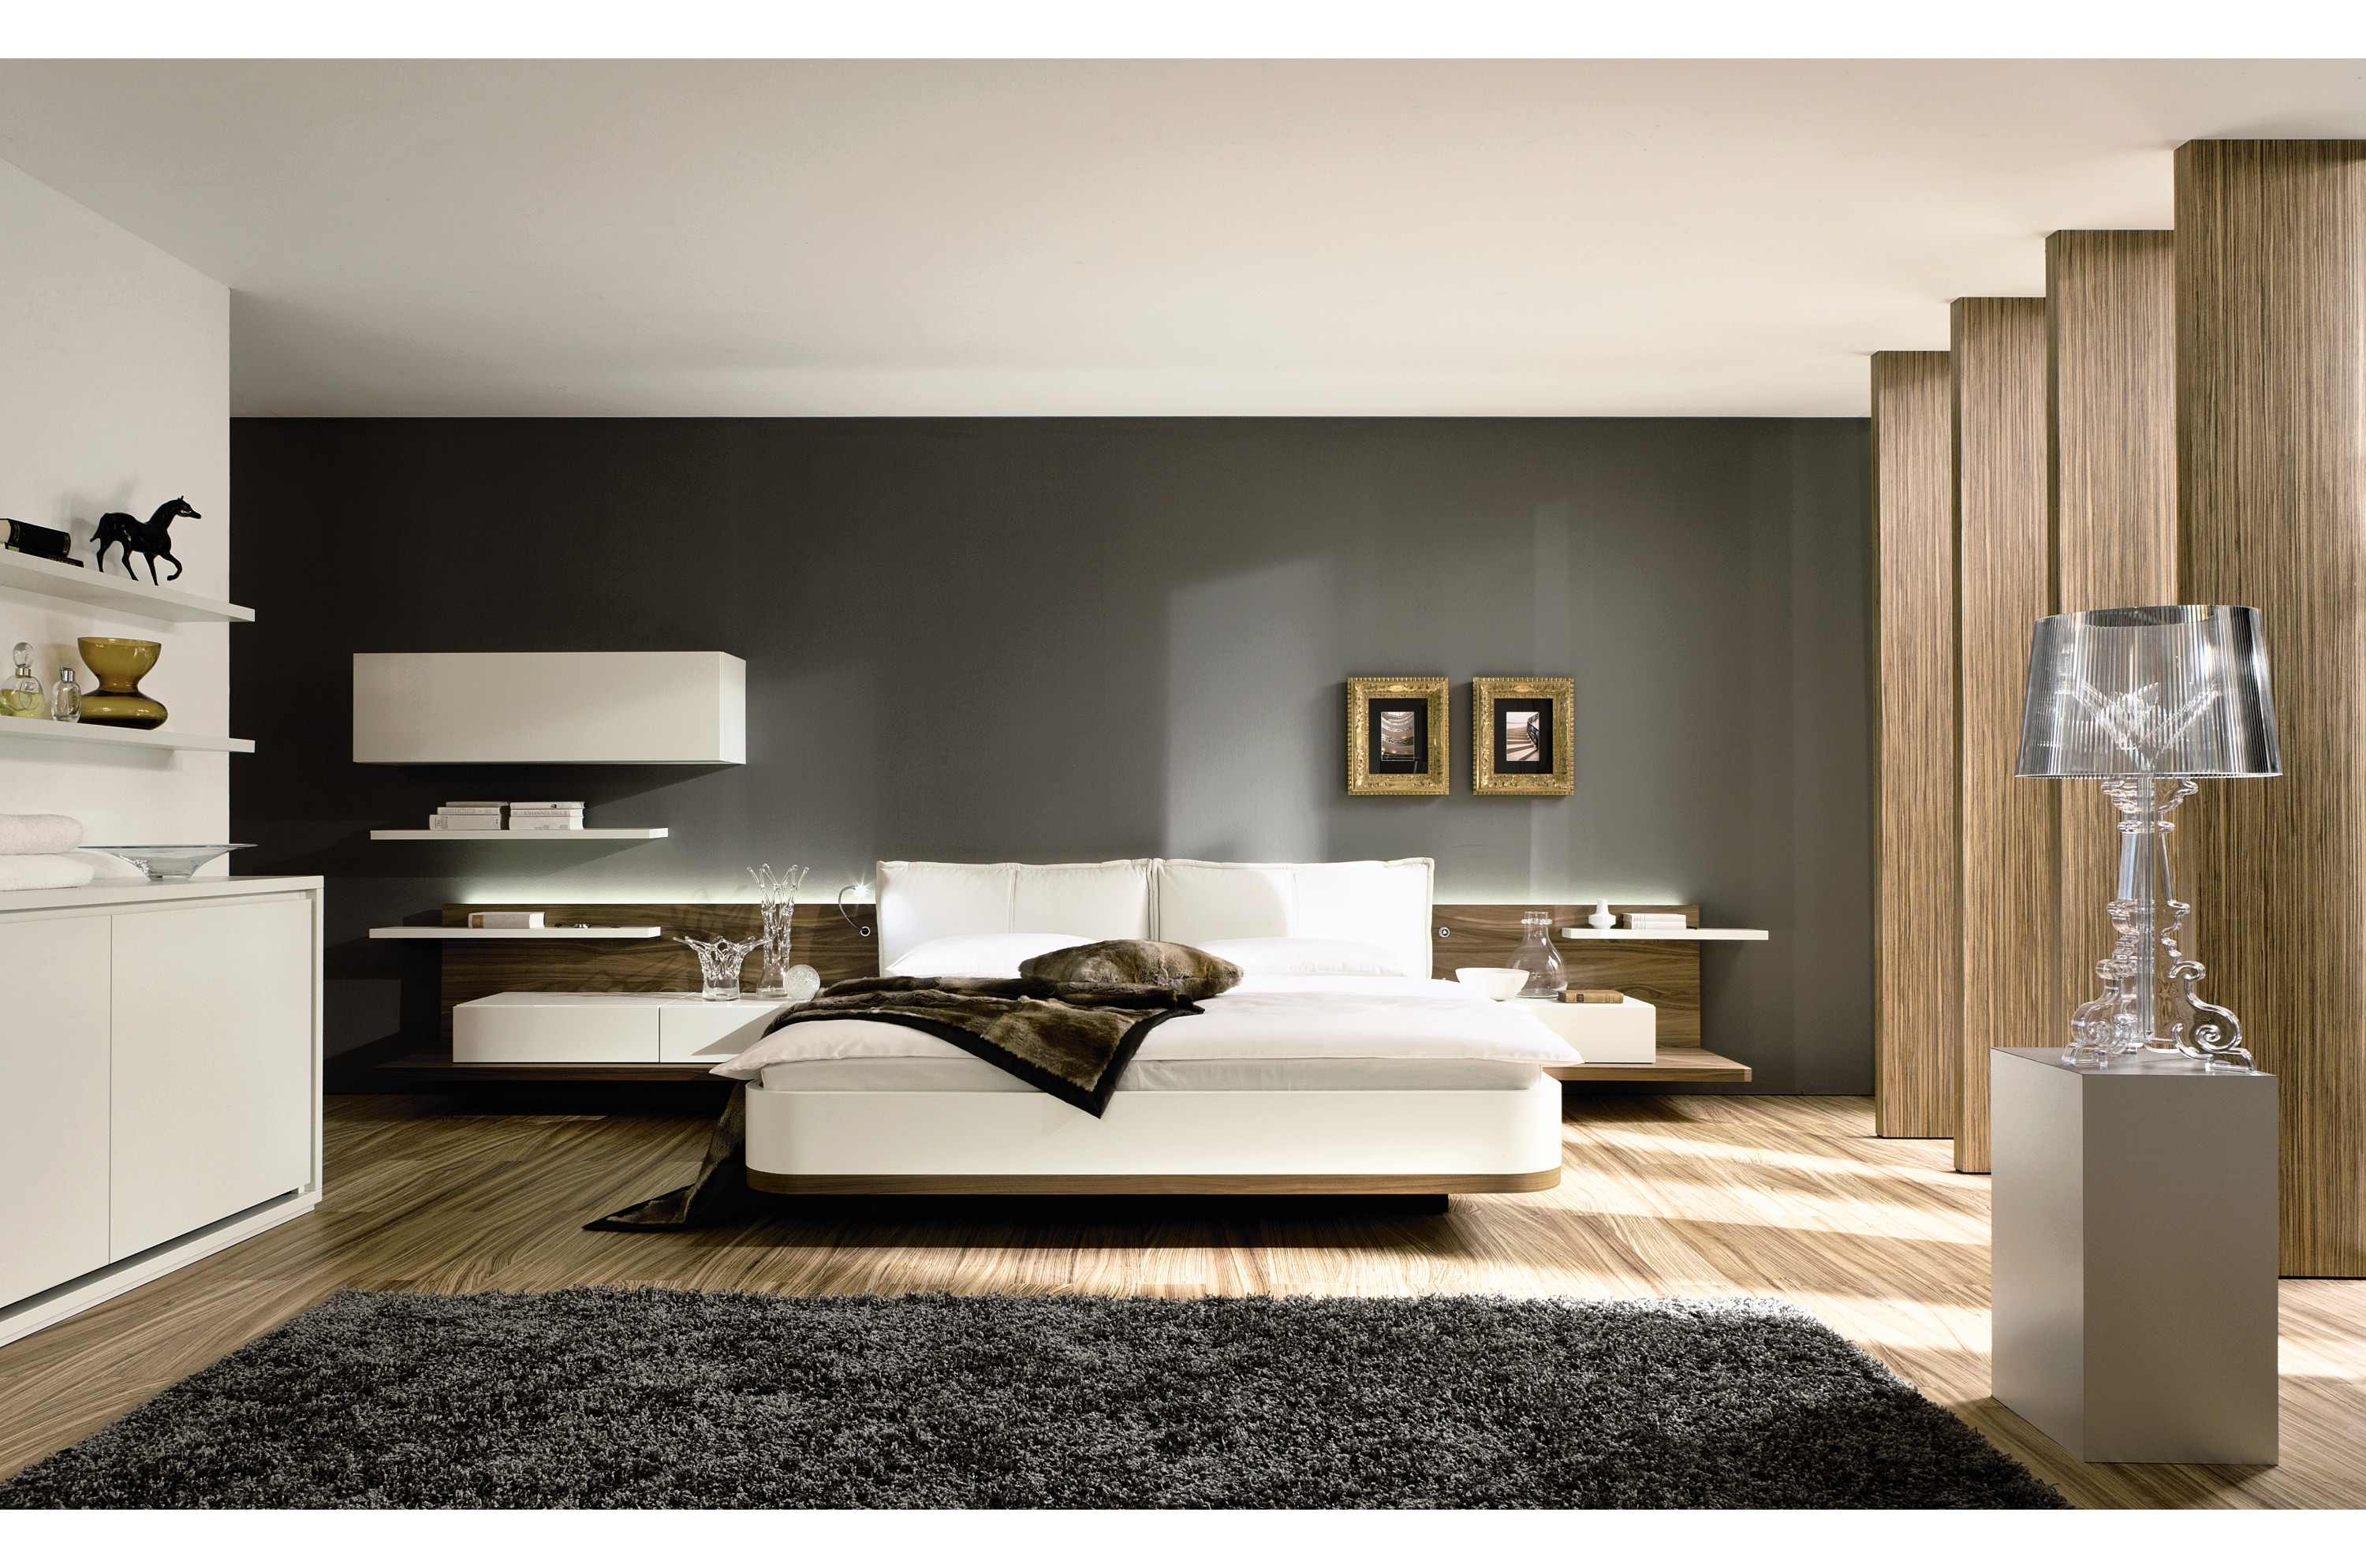 Modern bedroom innovation bedroom ideas interior design for Innovative bedroom designs